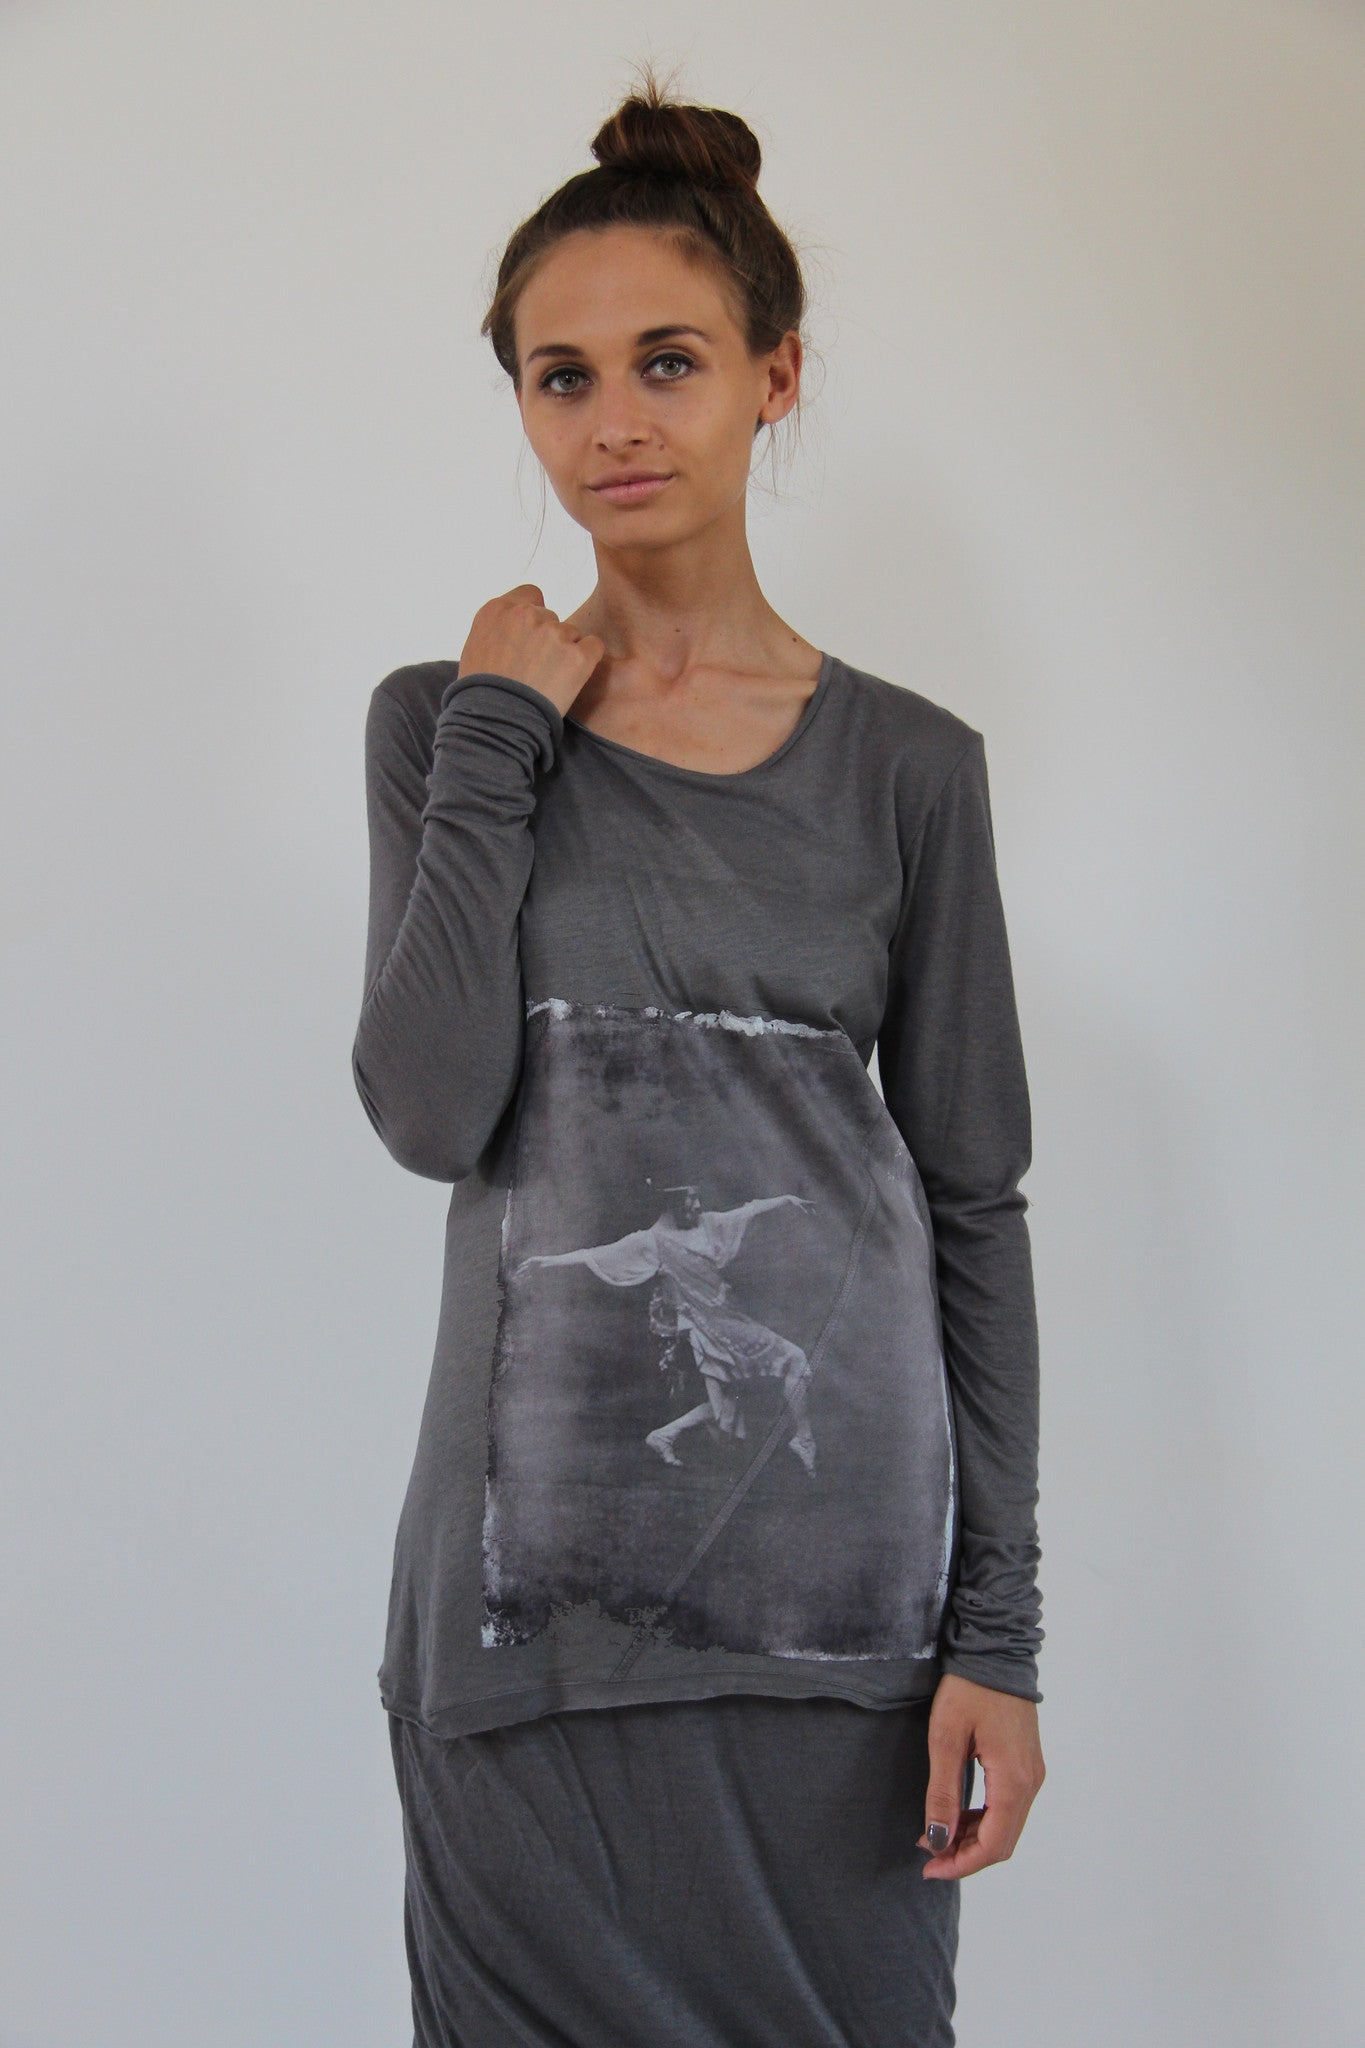 Window Dressing The Soul- Tiny Dancer Long Sleeve Grey T-Shirt